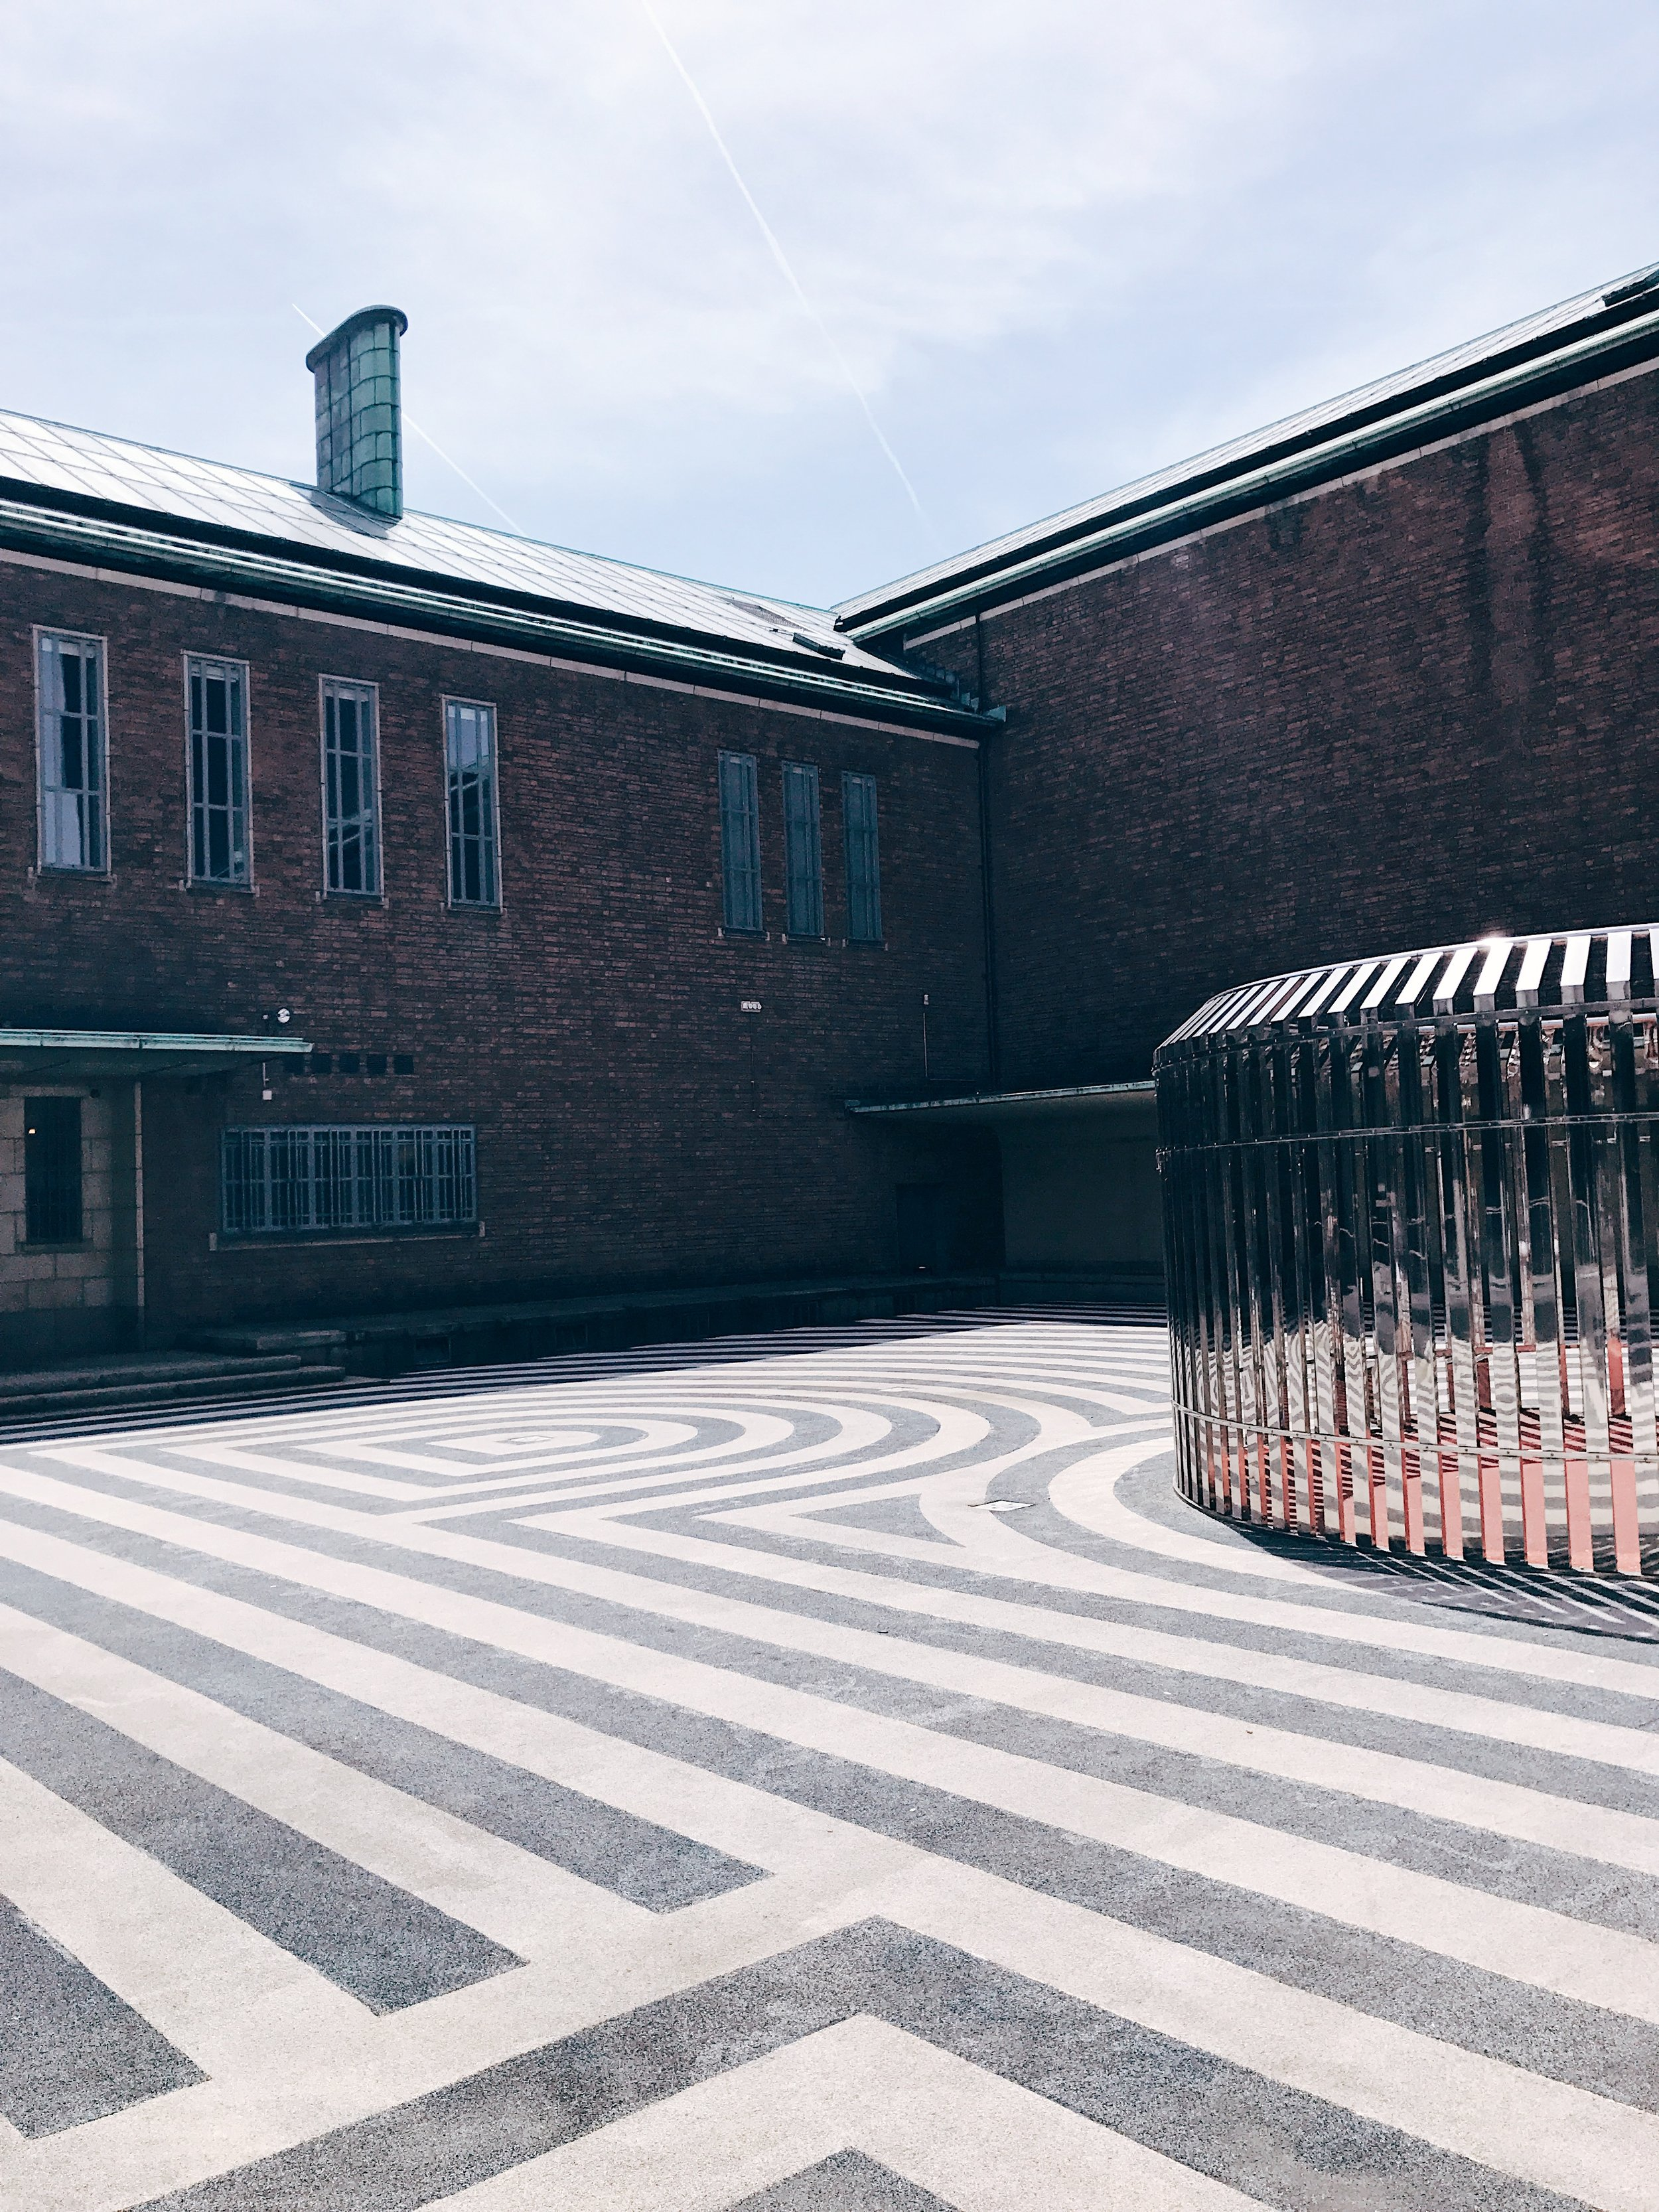 The entry to Museum Boijmans